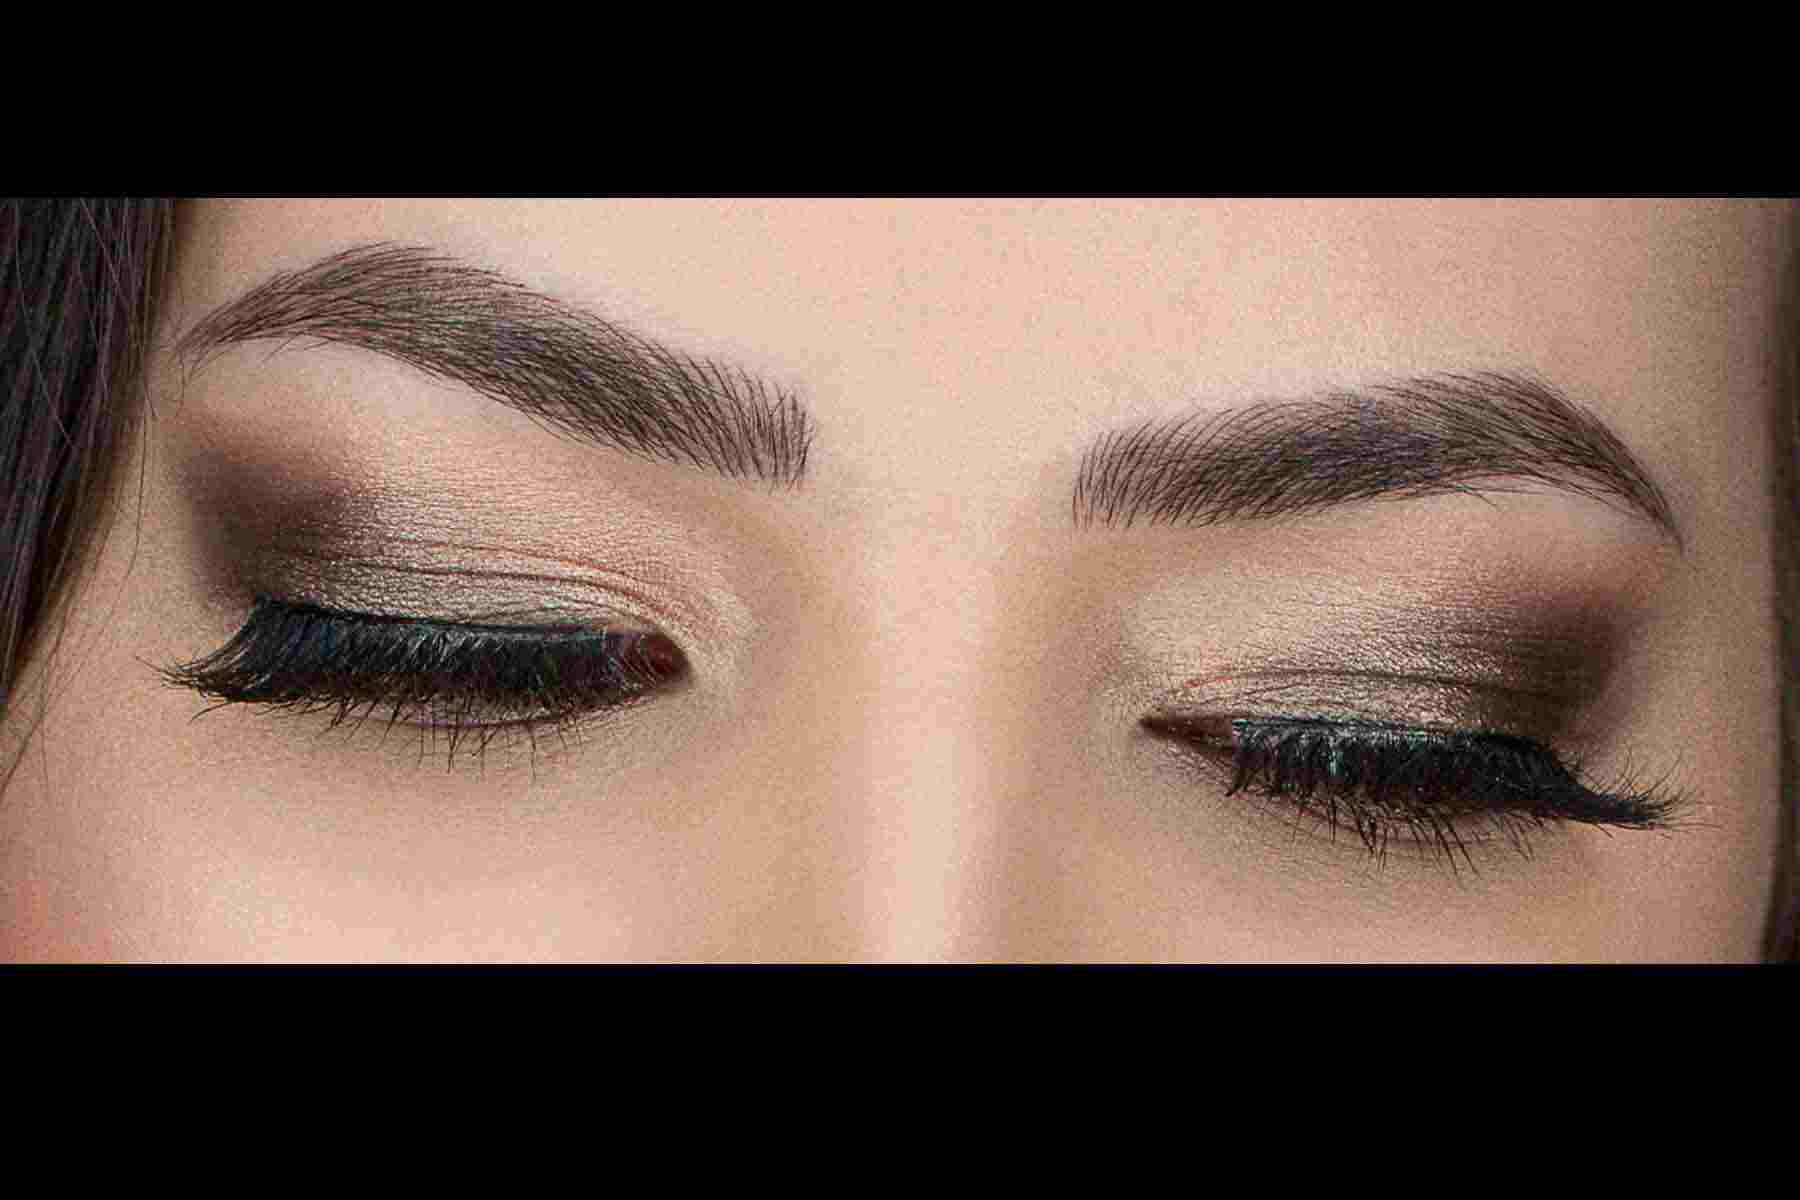 Microblading VS. Eyebrow Tatooing What's the Difference? Pros and Cons